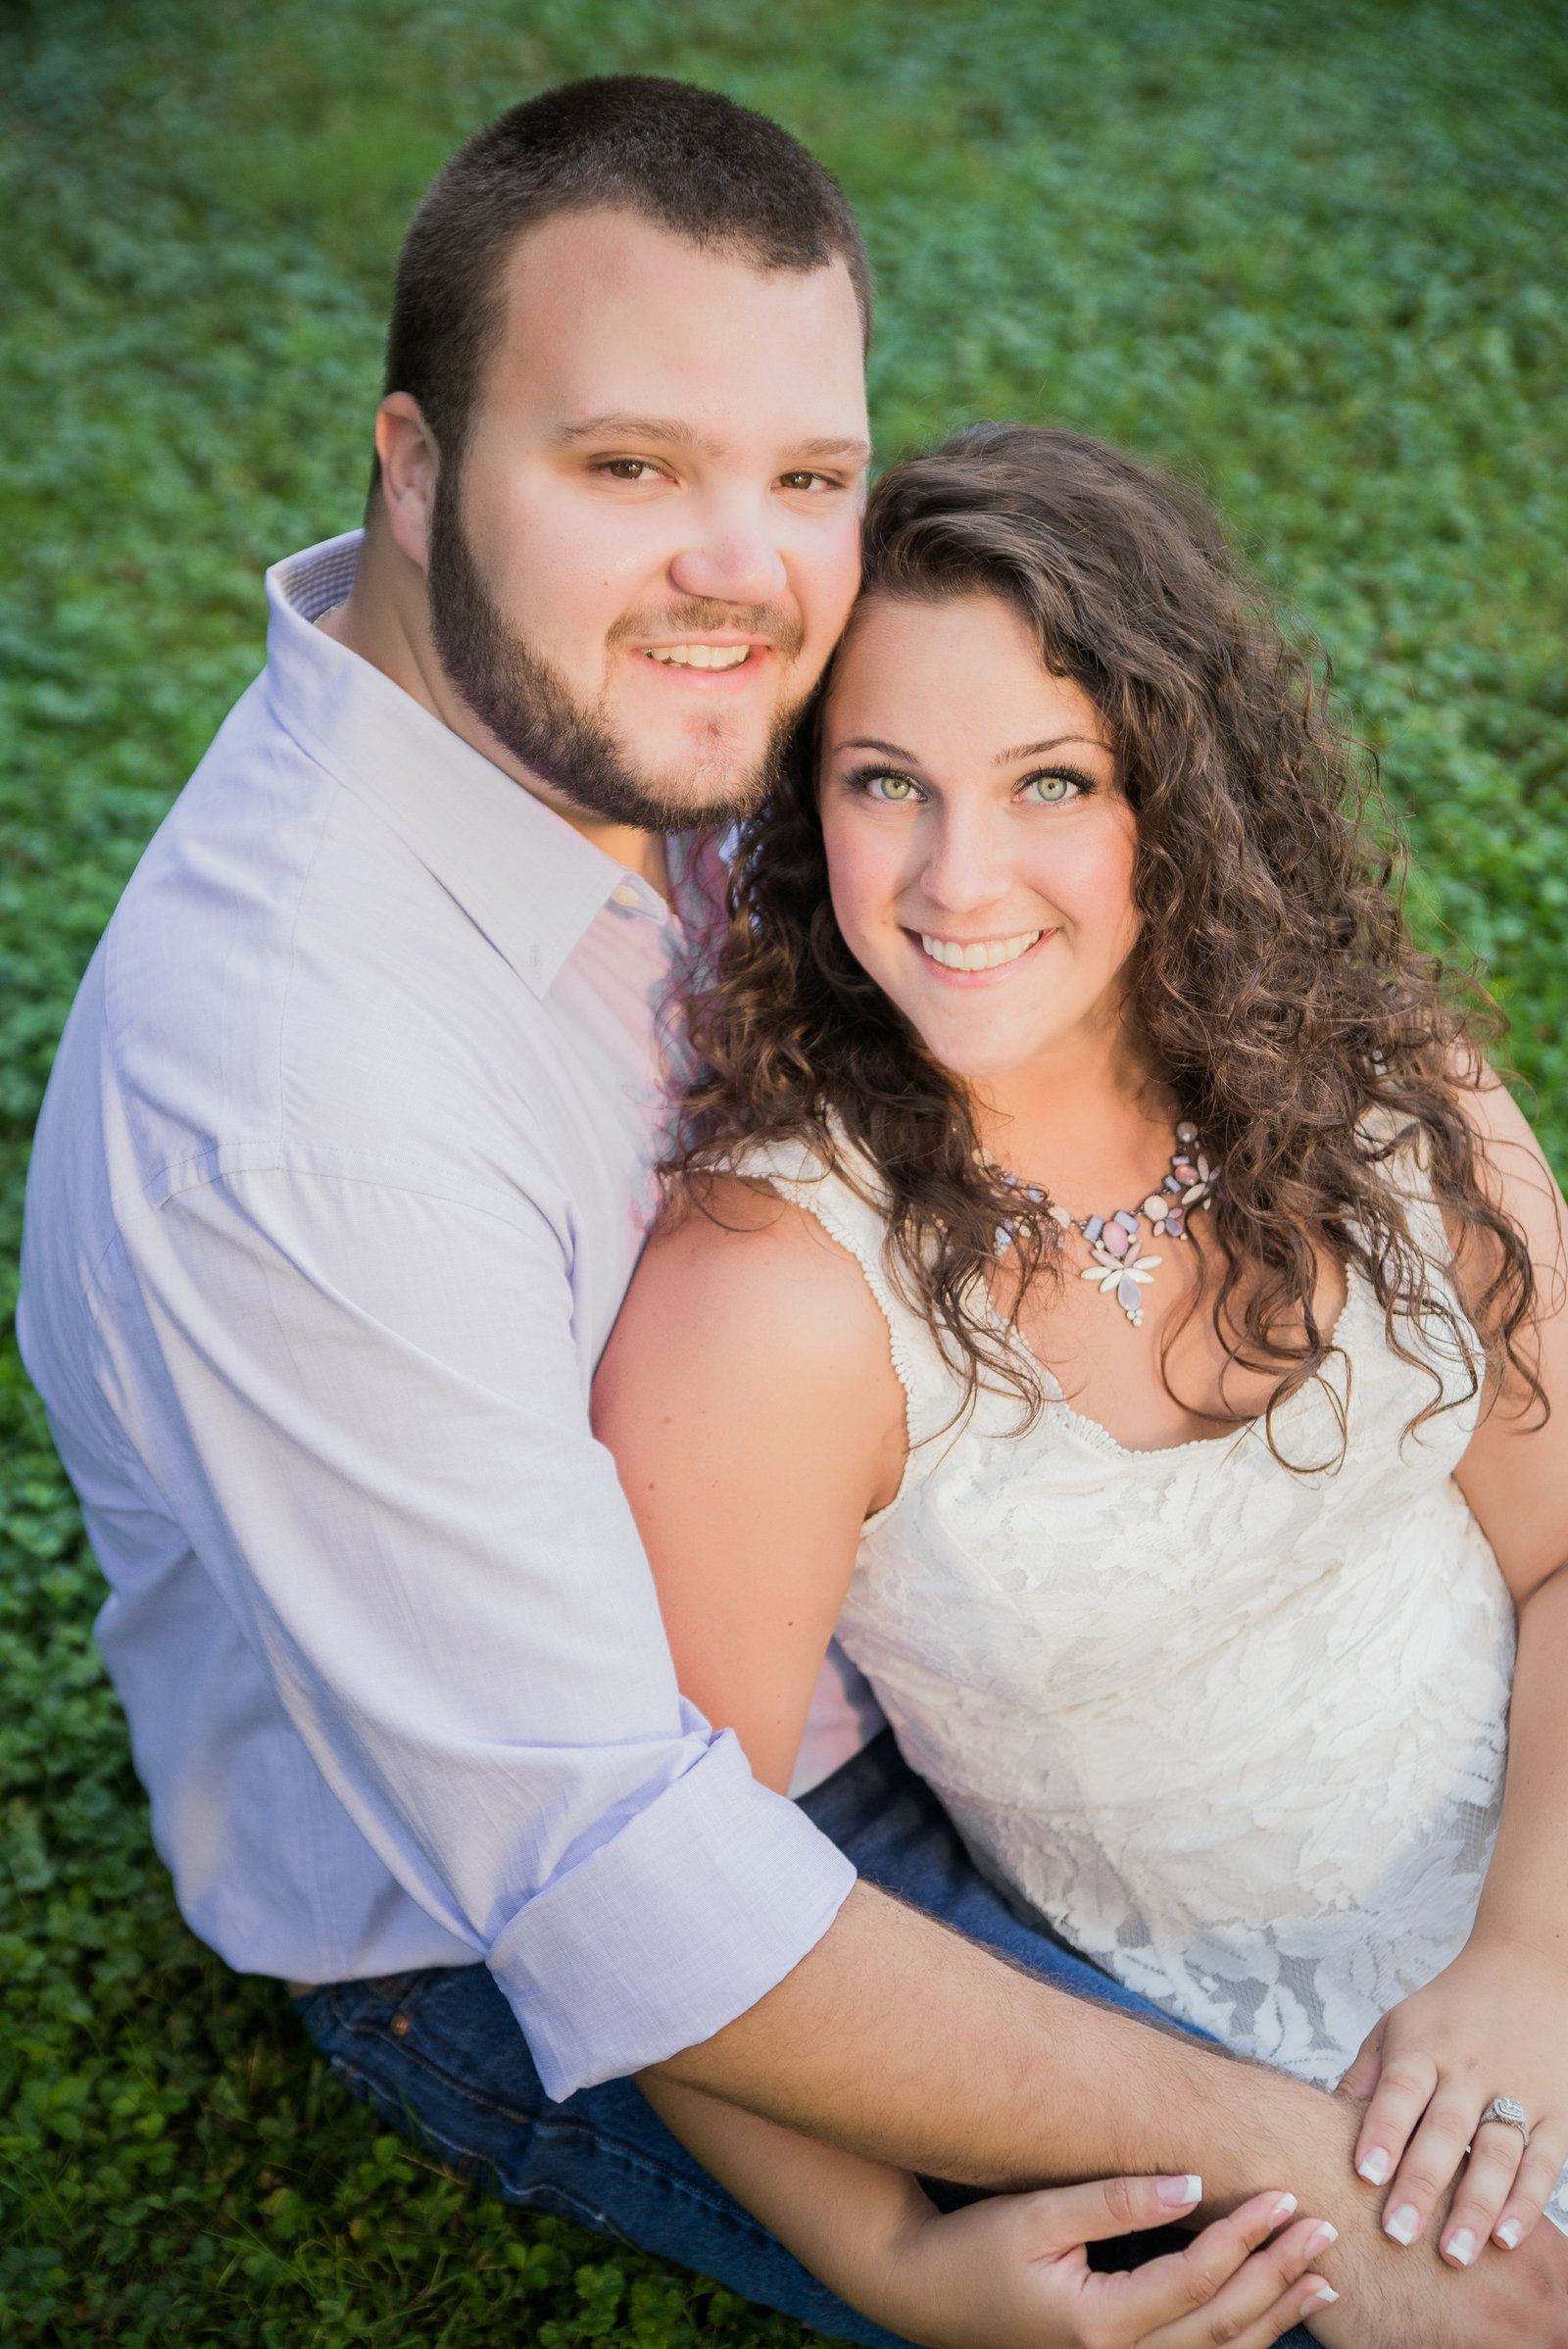 NJ_Rustic_Engagement_Photography013